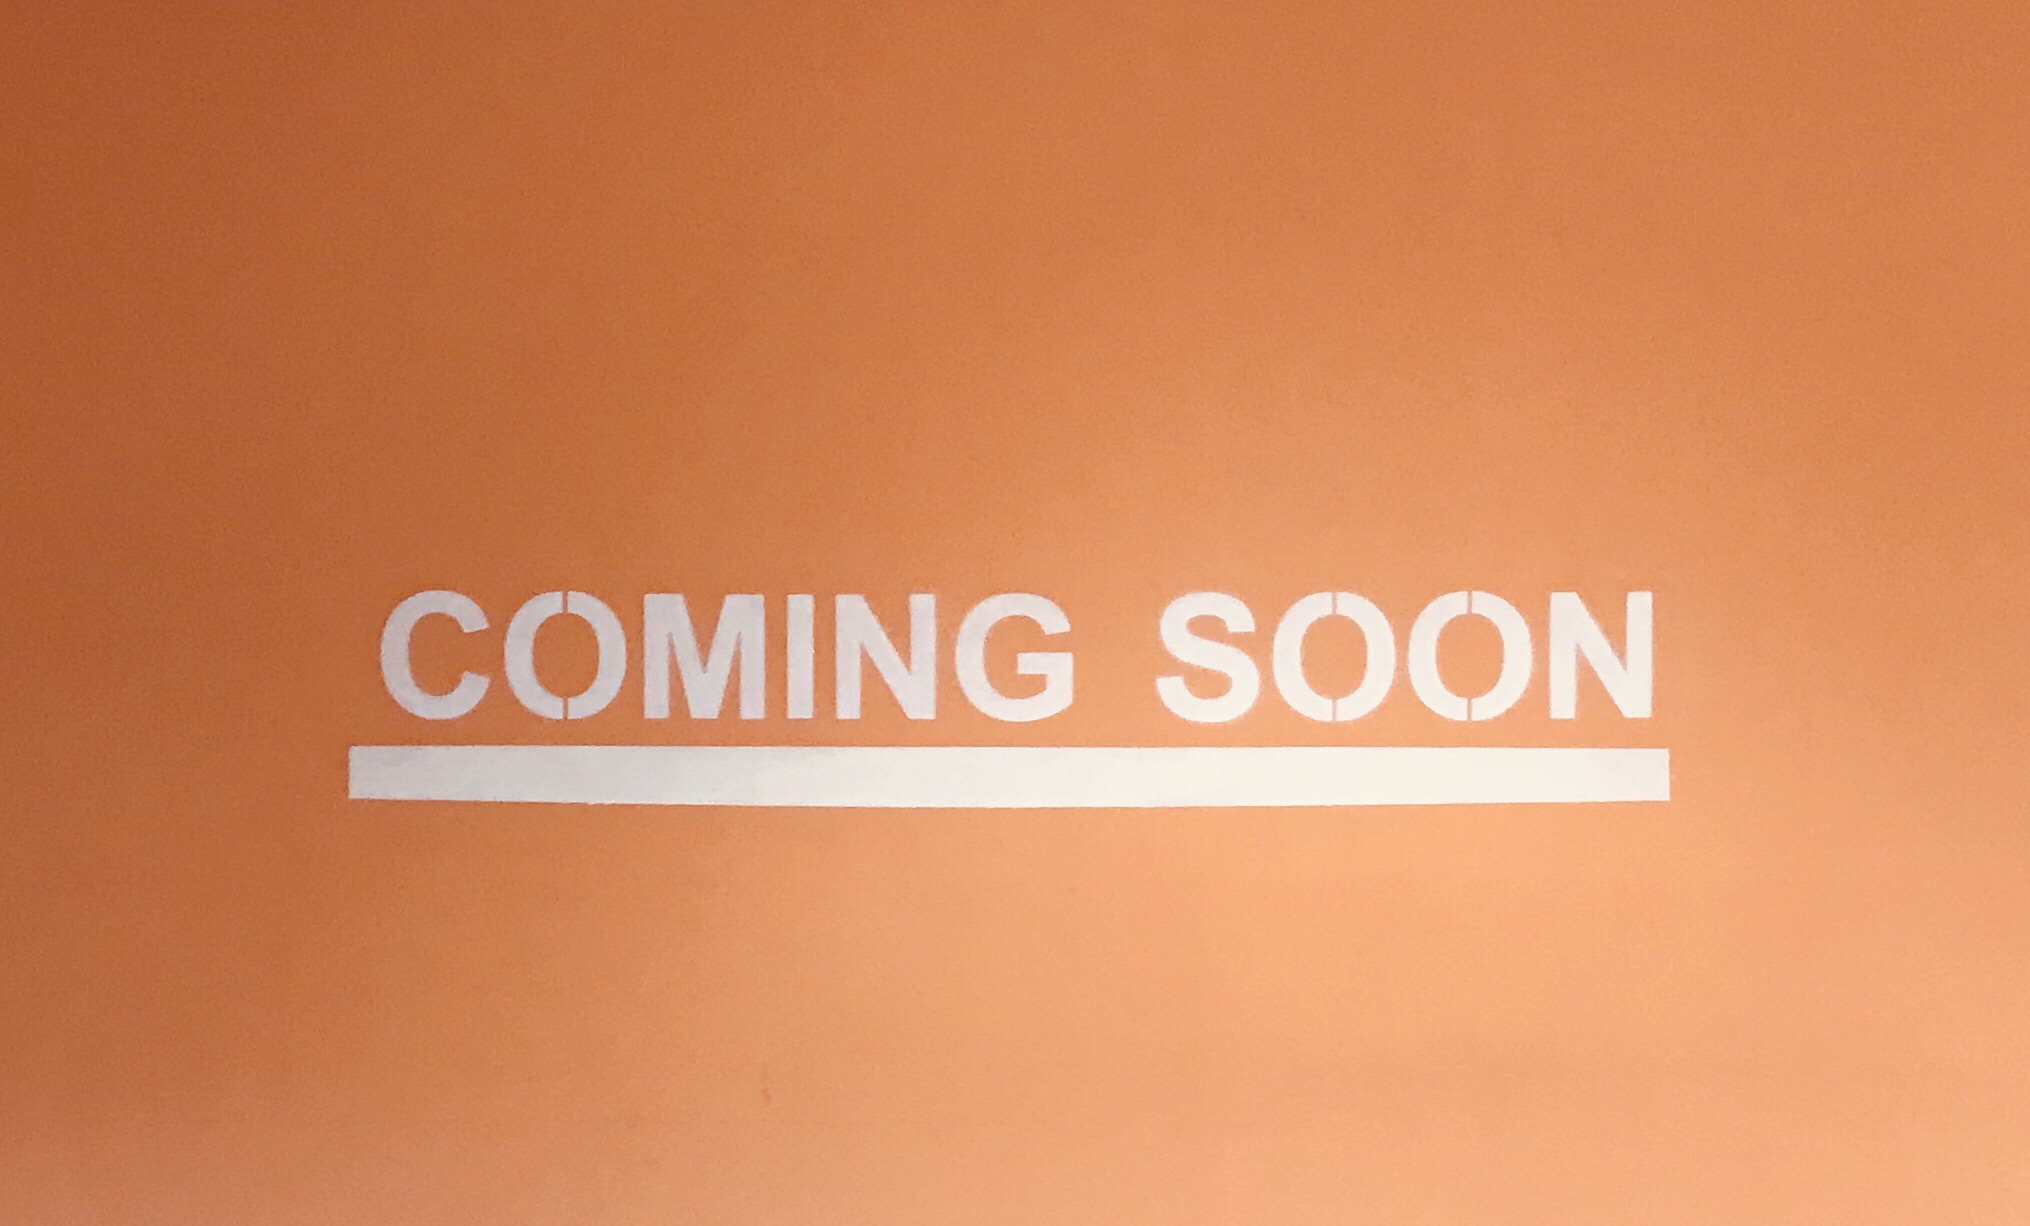 NEW Location Coming Soon!